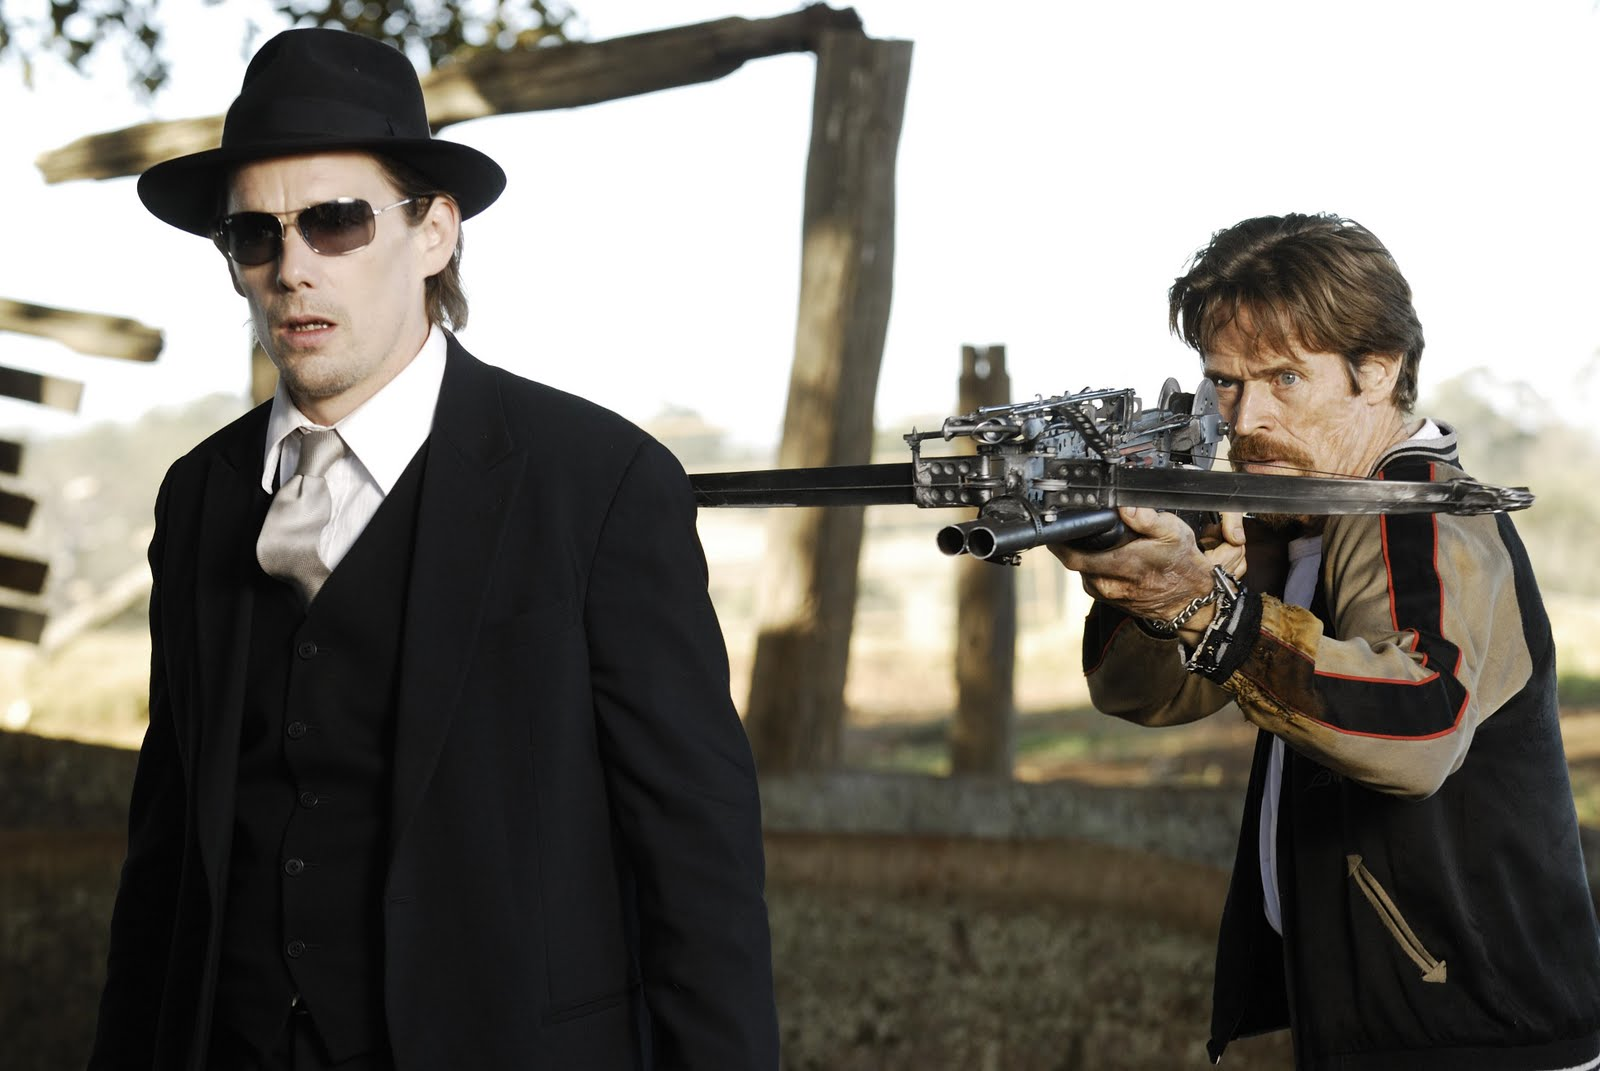 Vampire Ethan Hawke and Willem Dafoe as a vampire who has become human again in Daybreakers (2009)